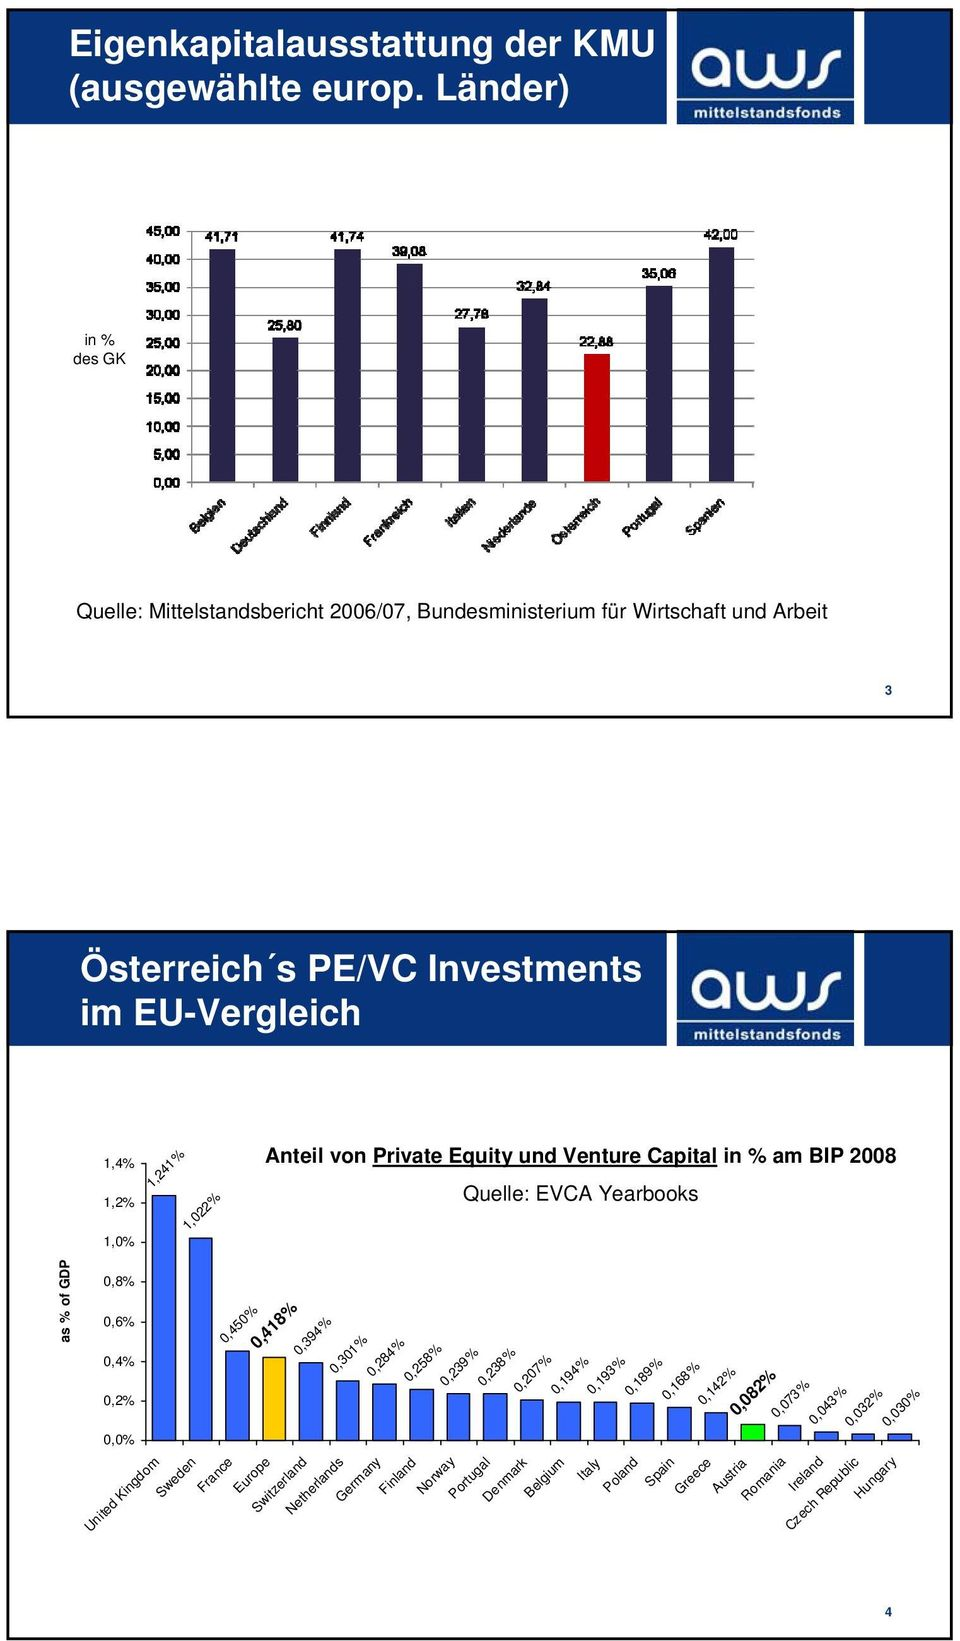 1,241% 1,022% Anteil von Private Equity und Venture Capital in % am BIP 2008 Quelle: EVCA Yearbooks as % of GDP 0,8% 0,6% 0,4% 0,2% 0,0% 0,450% 0,418% 0,394% 0,301%